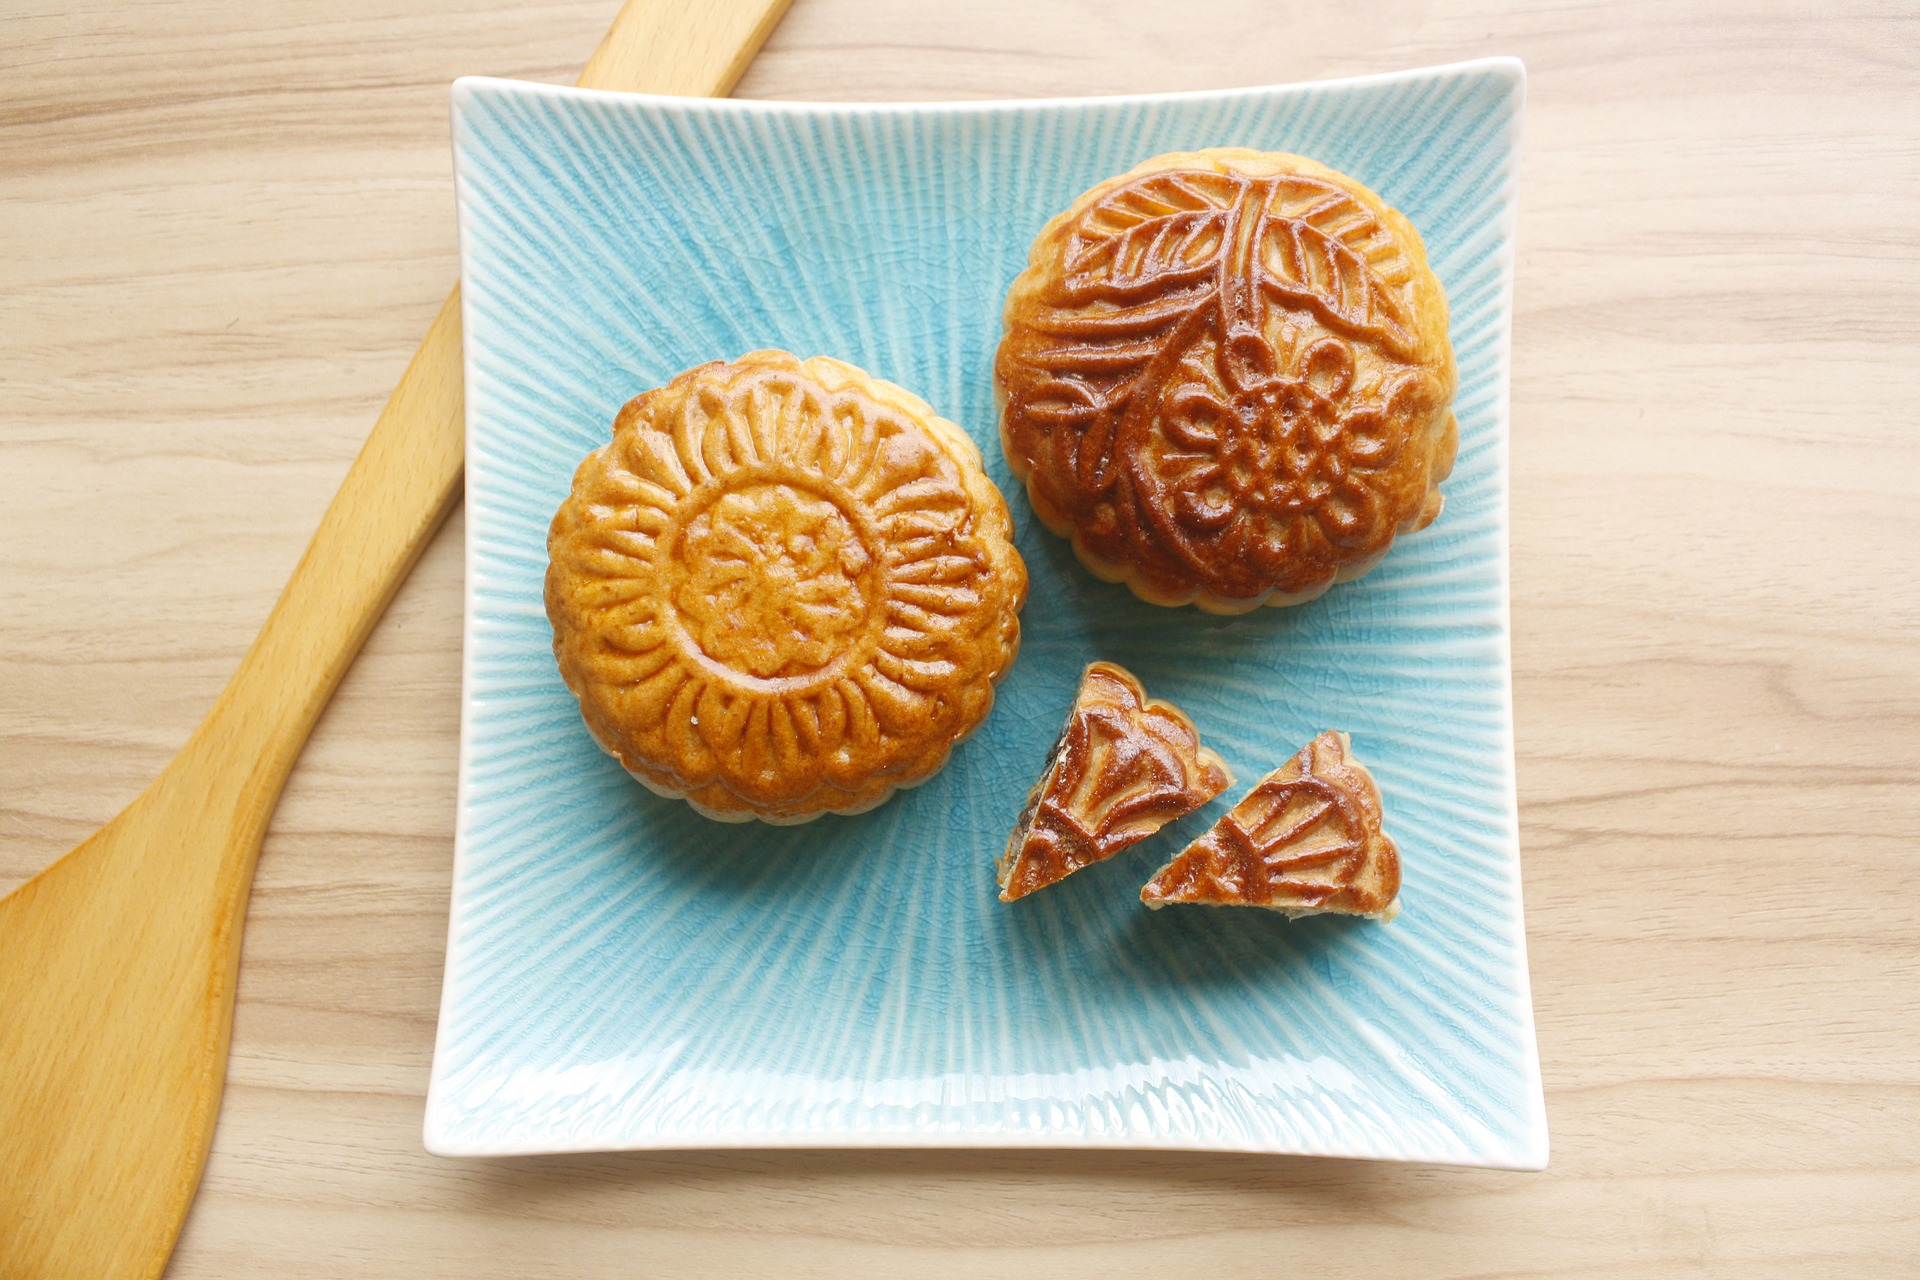 photo of two round and decorated Chinese mooncakes